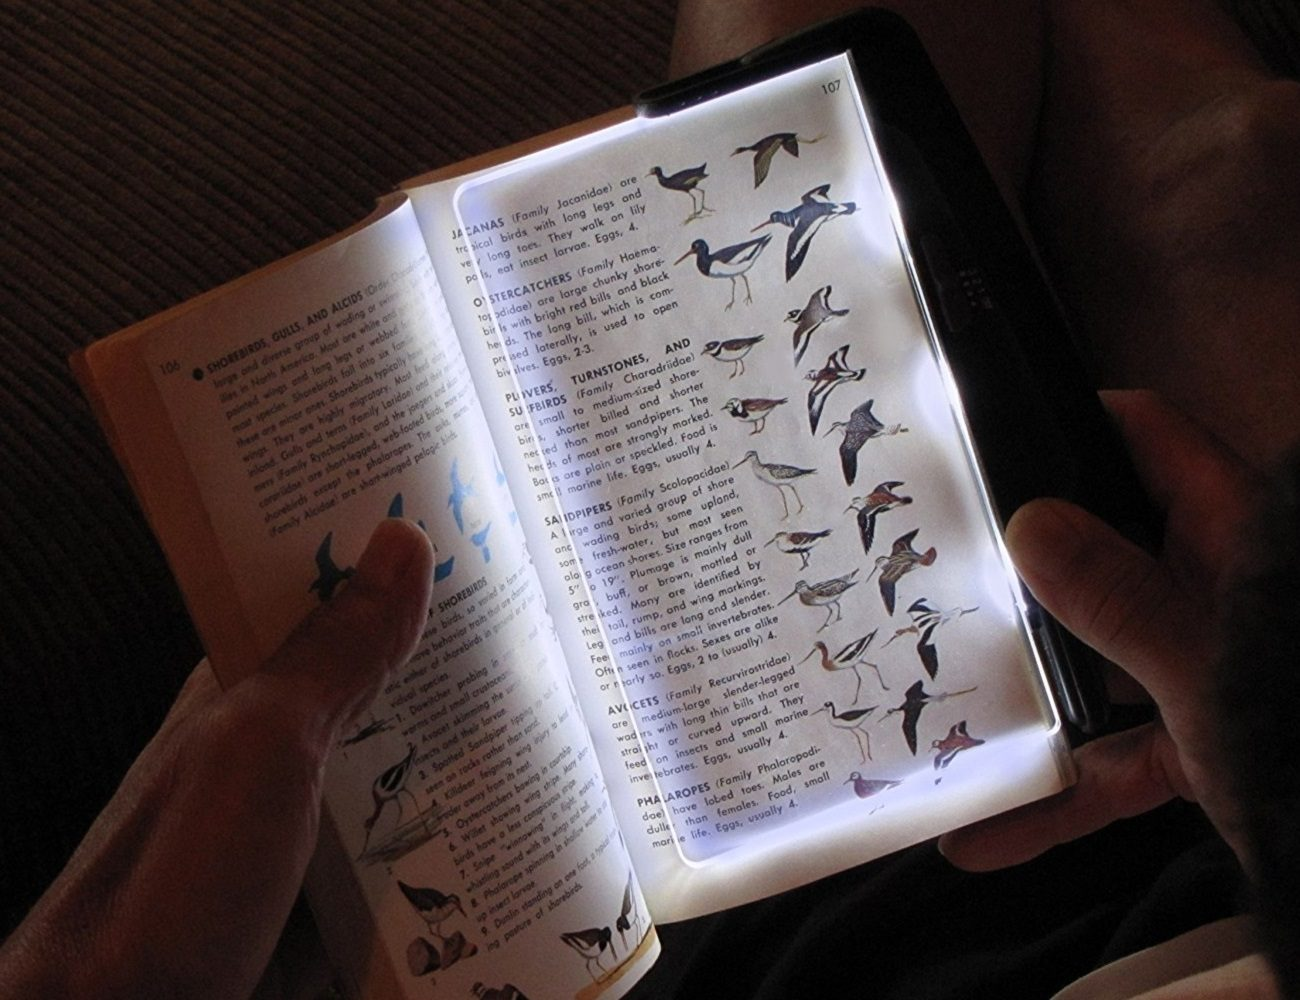 hug neck book modes handsfree adjustable new product light led flexible reading brand gadgets necklace night wholesale